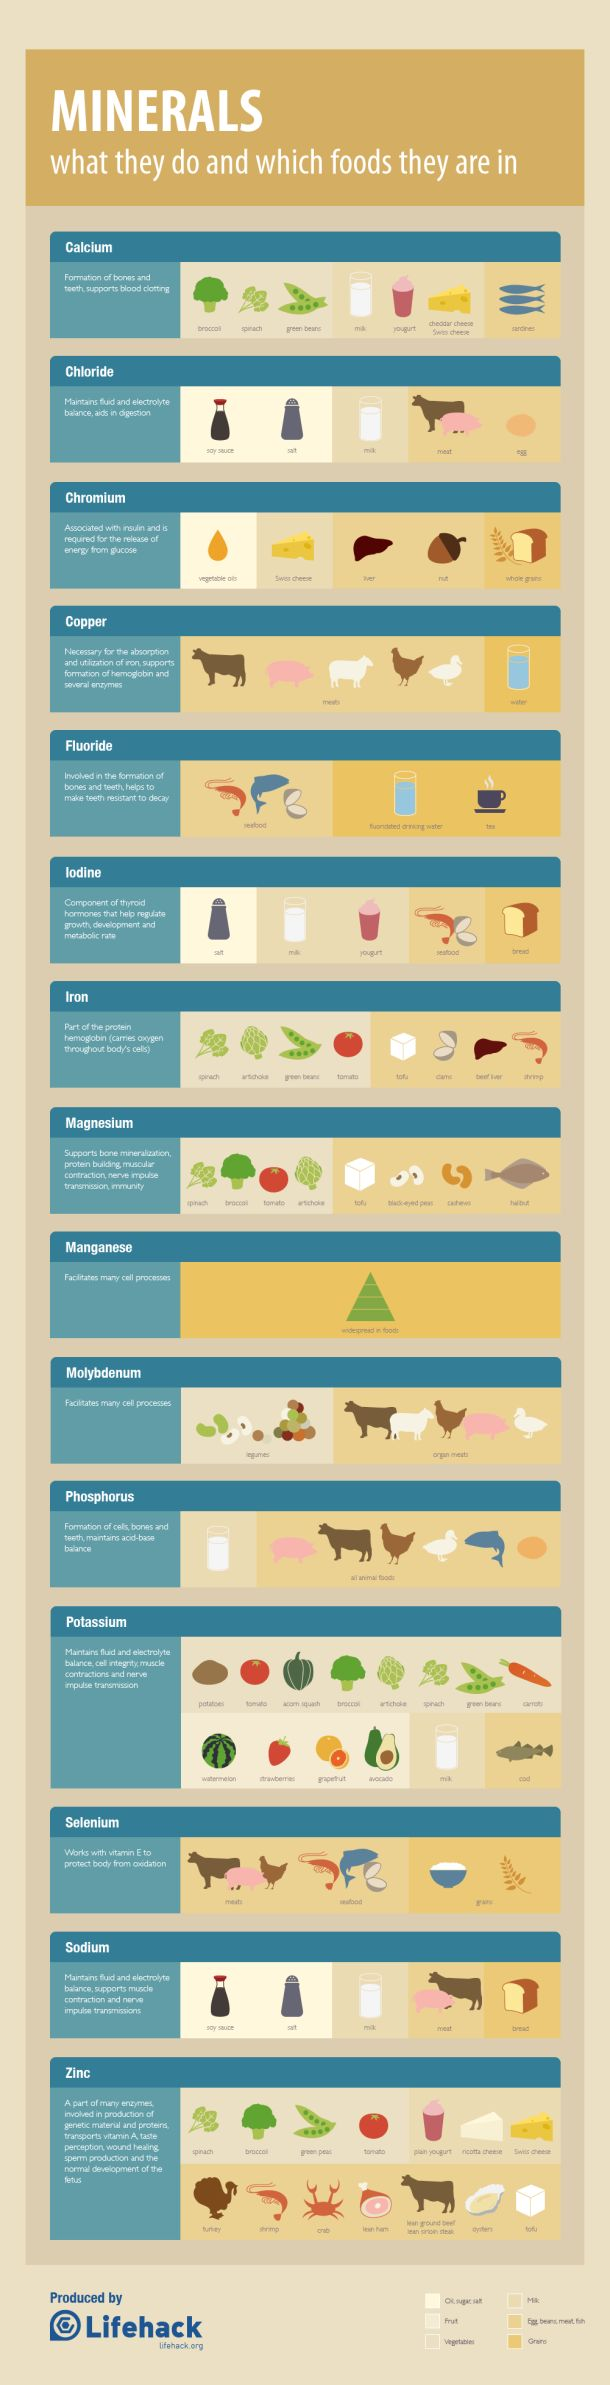 nutrition-minerals-cheat-sheet--food-sources